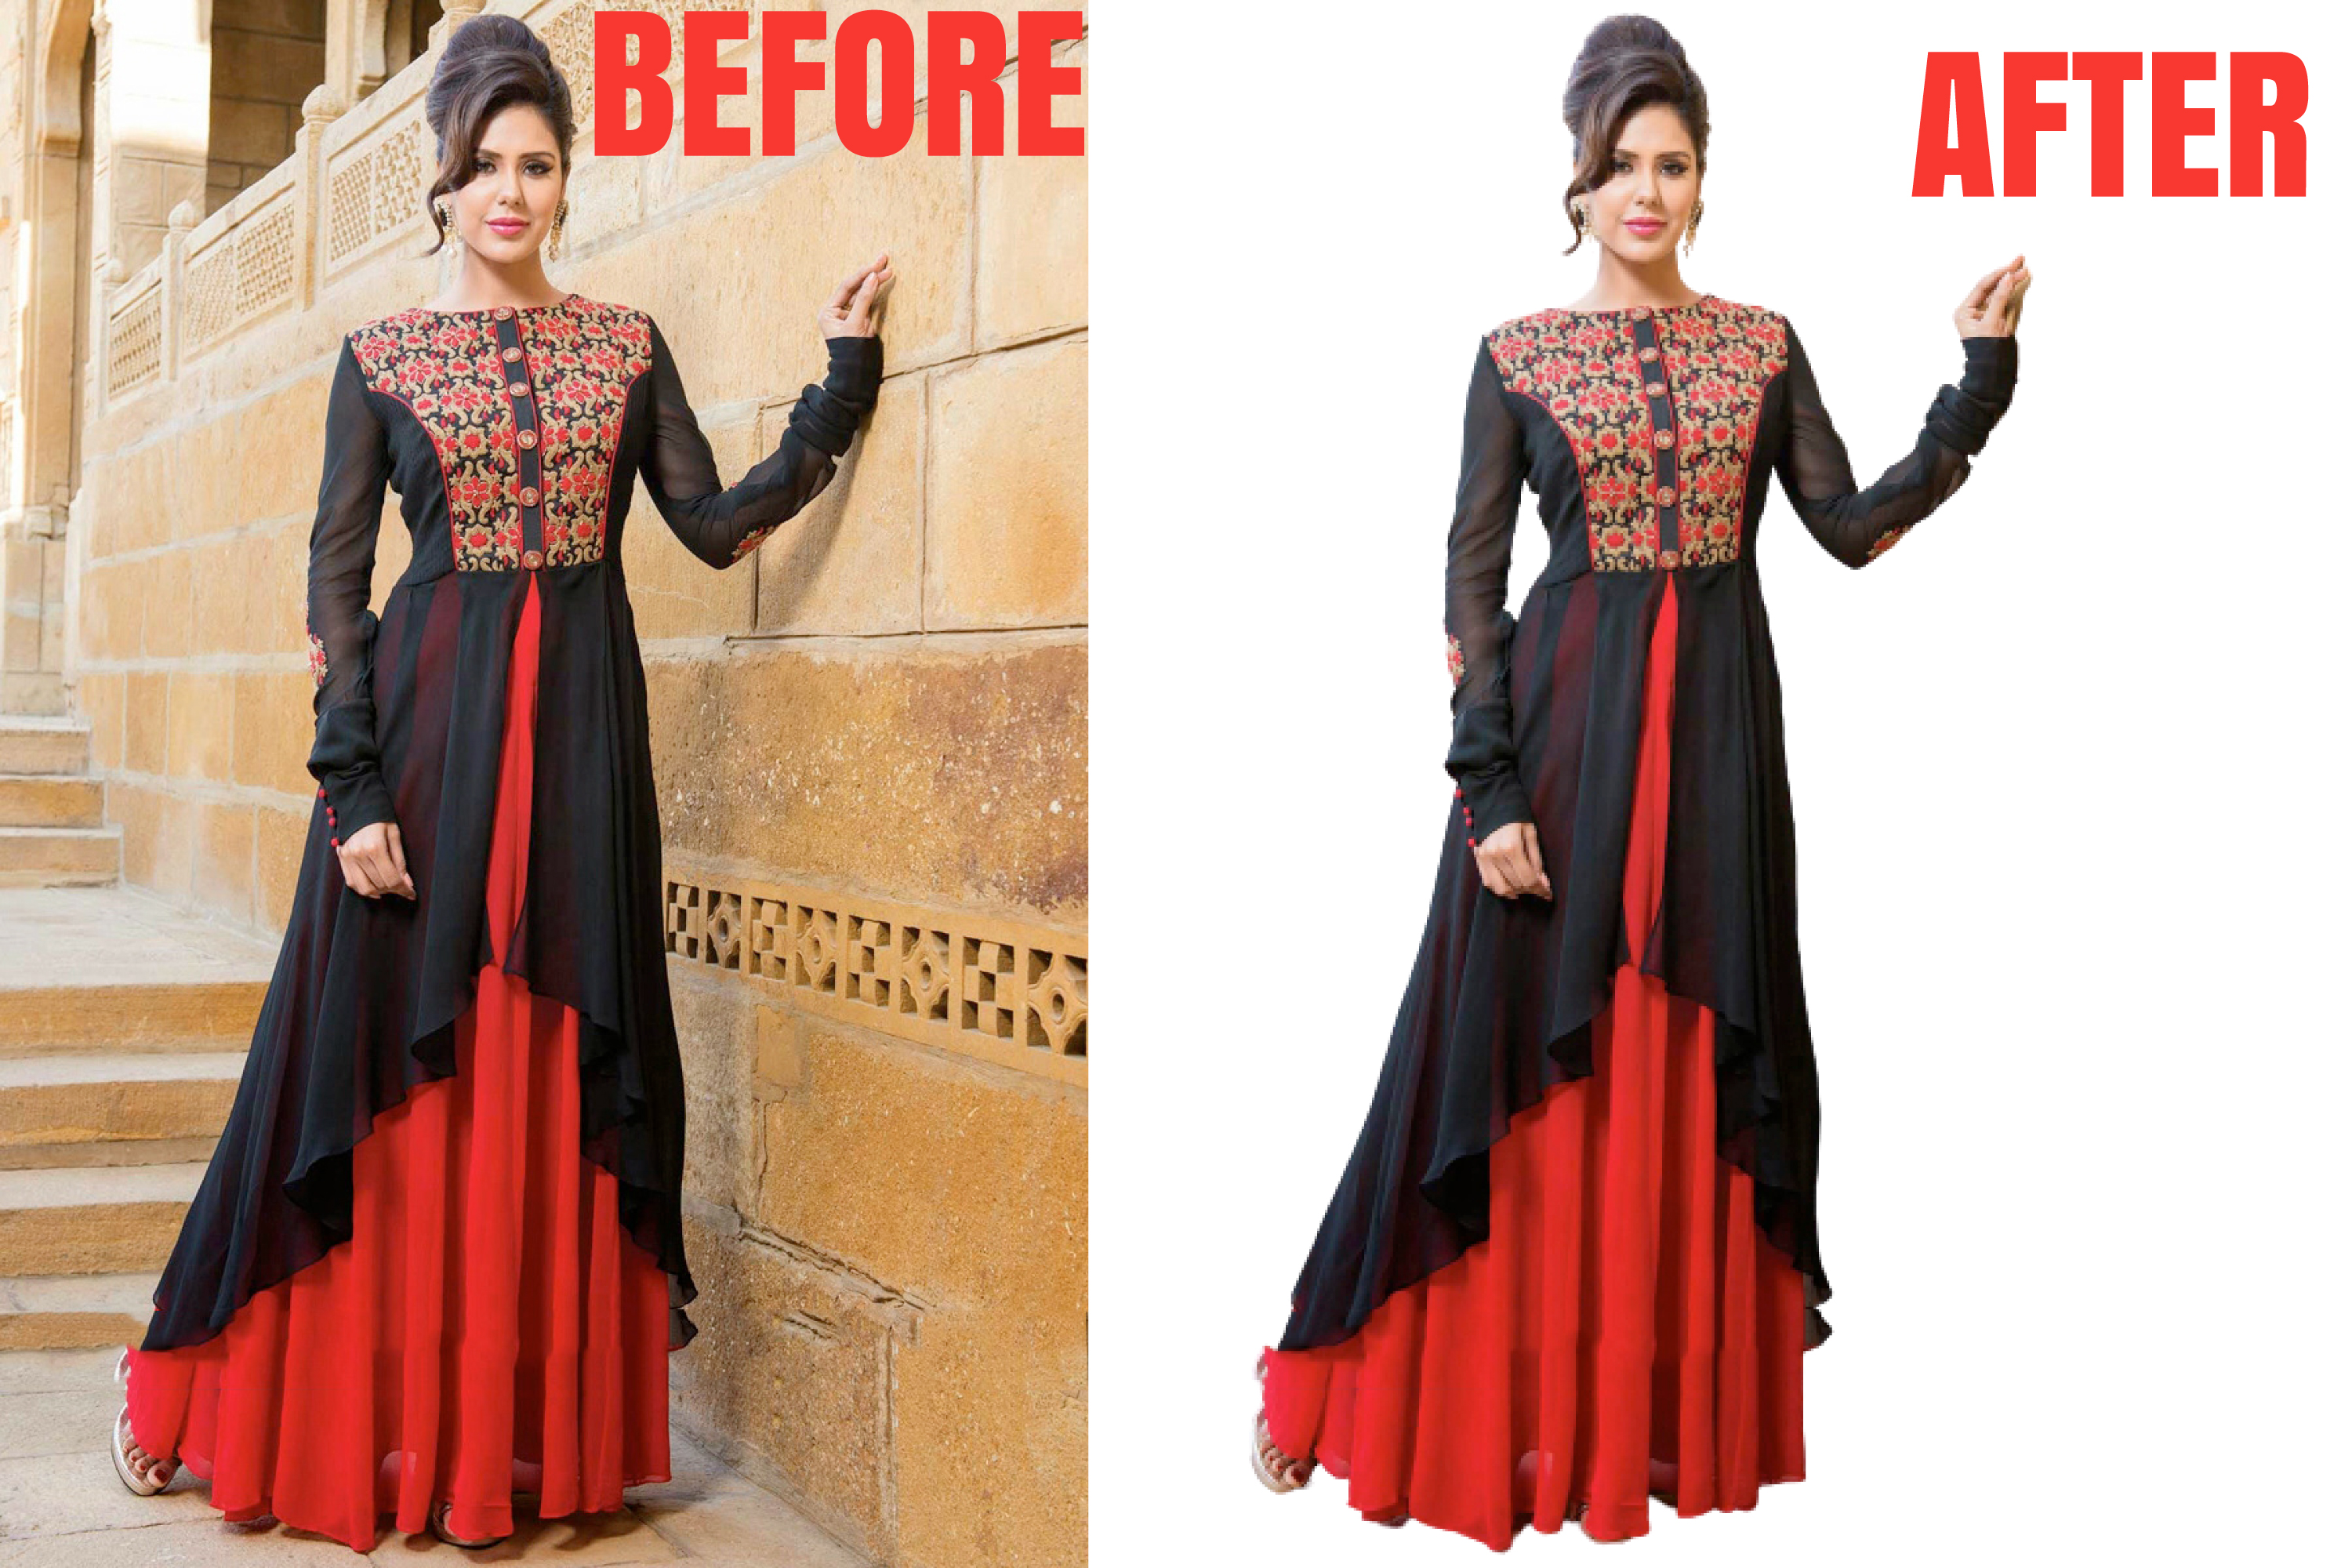 I will remove background, crop image and photoshop editing 5 images in 12 hours